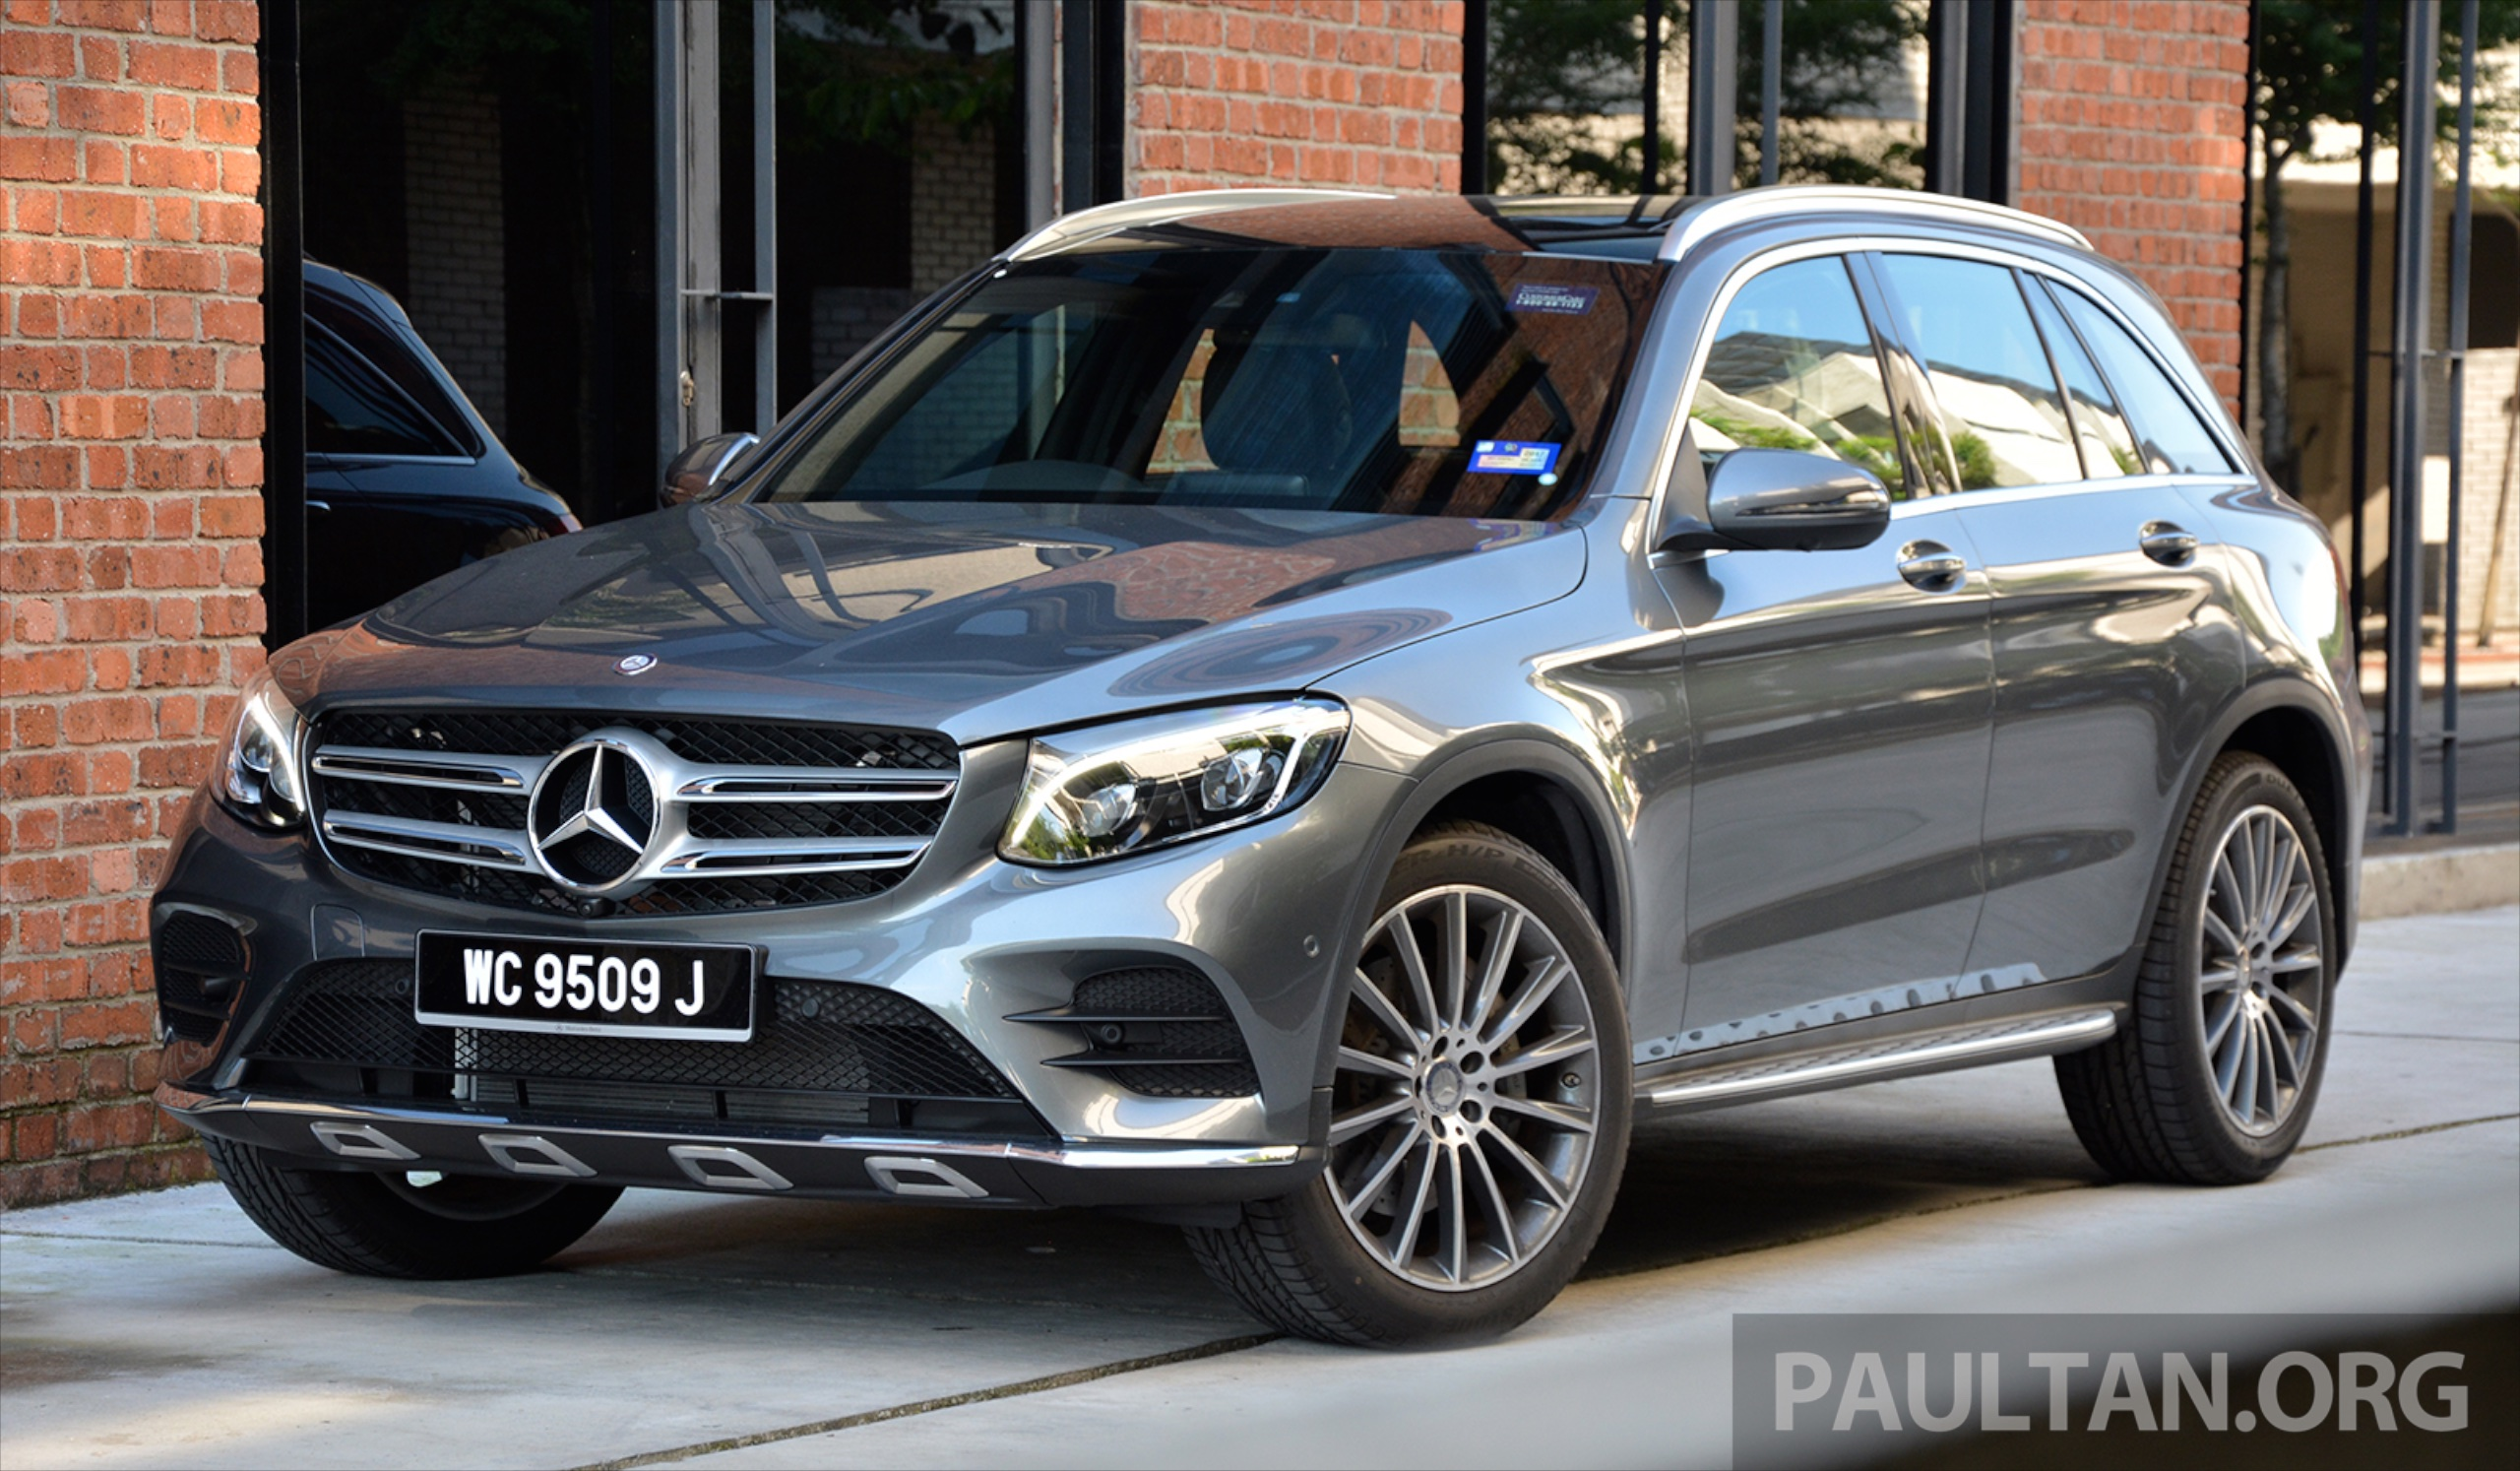 Driven mercedes benz glc250 star utility vehicle paul for Mercedes benz glc 250 4matic